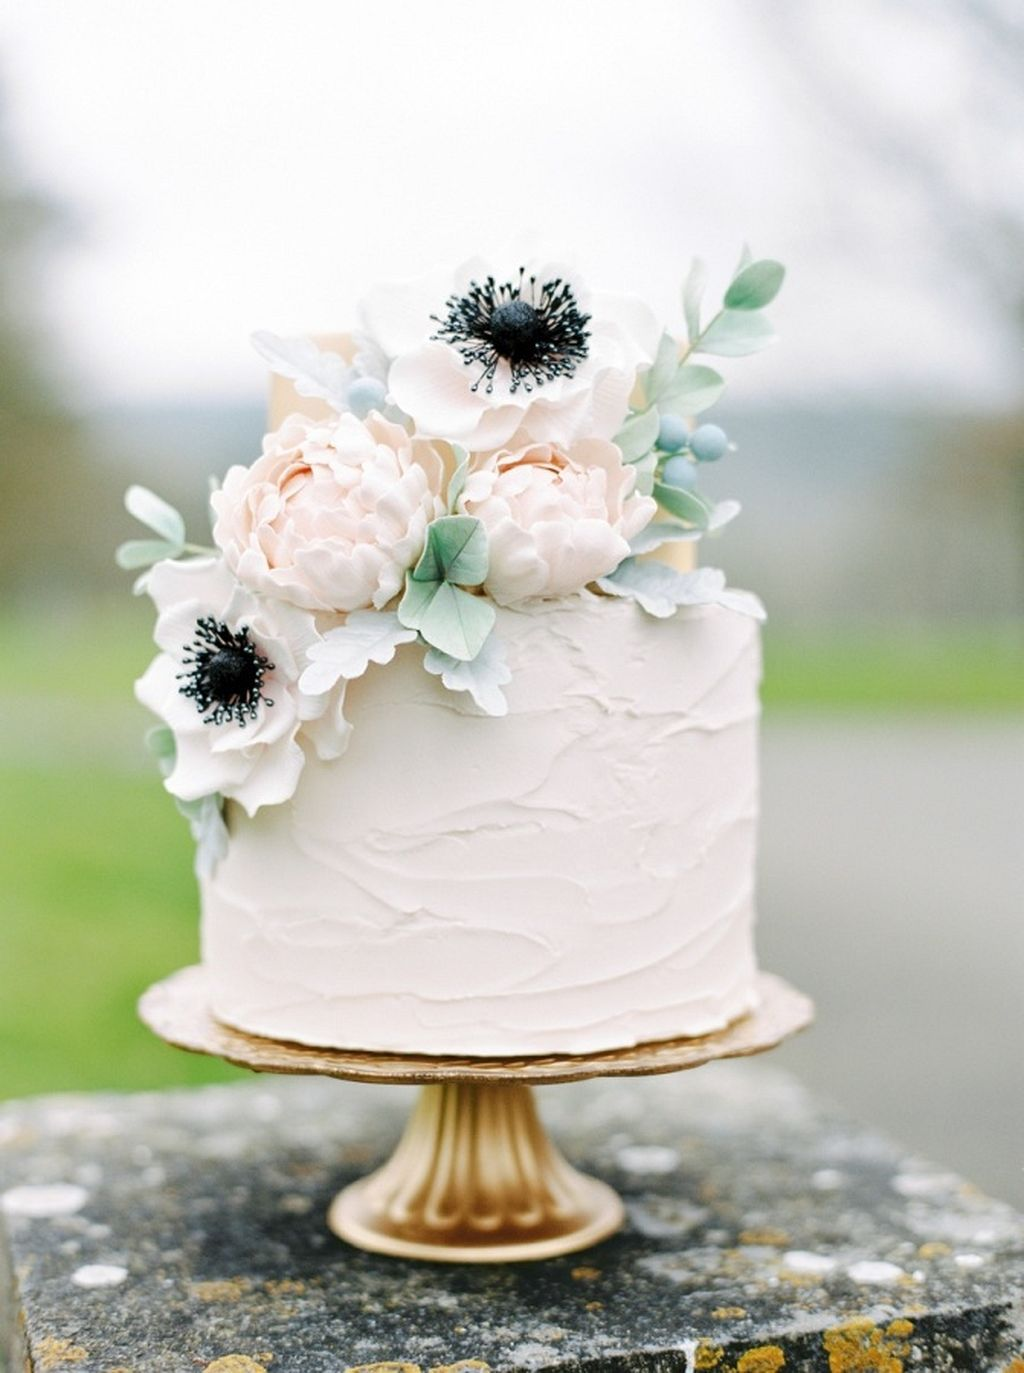 60+ Simple and Elegant Wedding Cake Ideas | Pinterest | Elegant ...